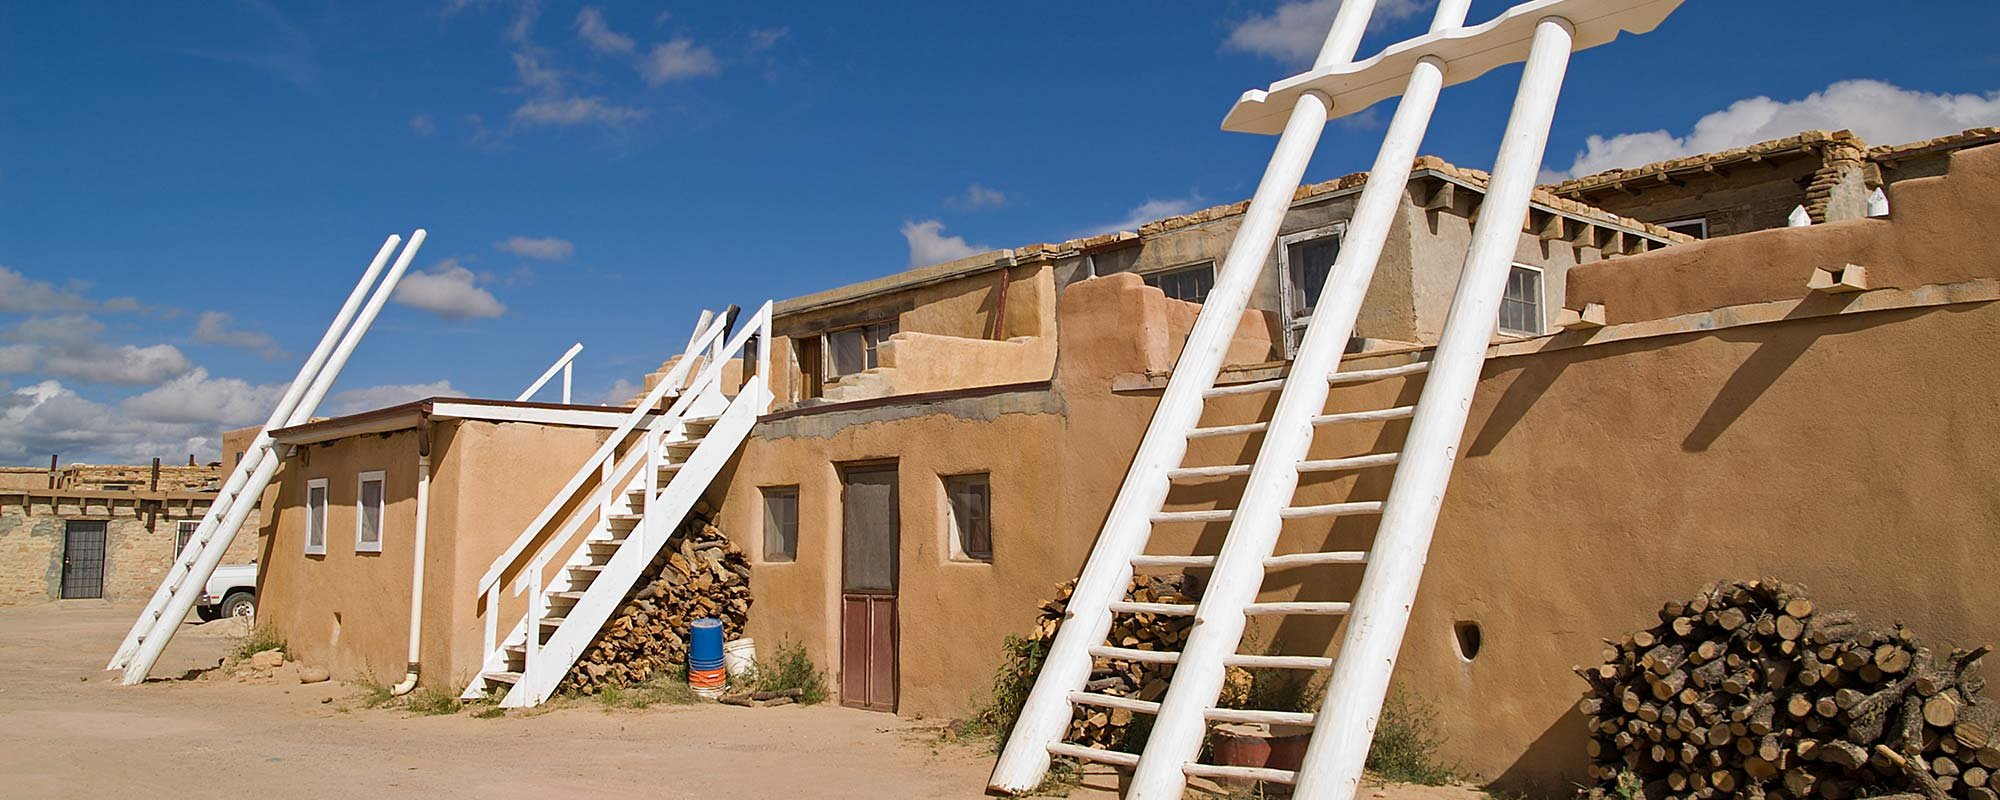 Indian Pueblo in New Mexico